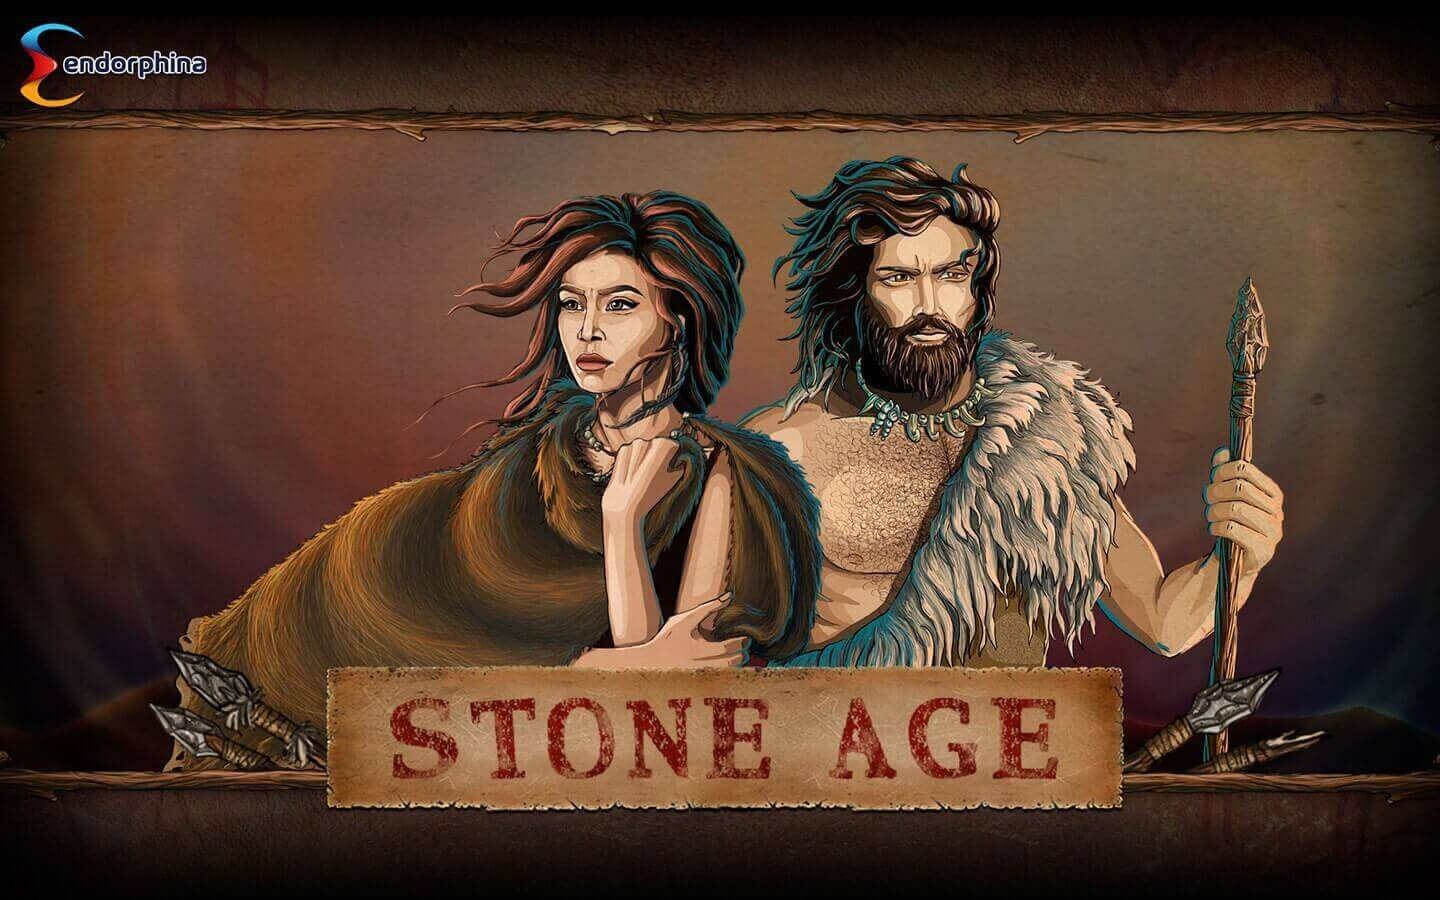 Stone Age slot machine review